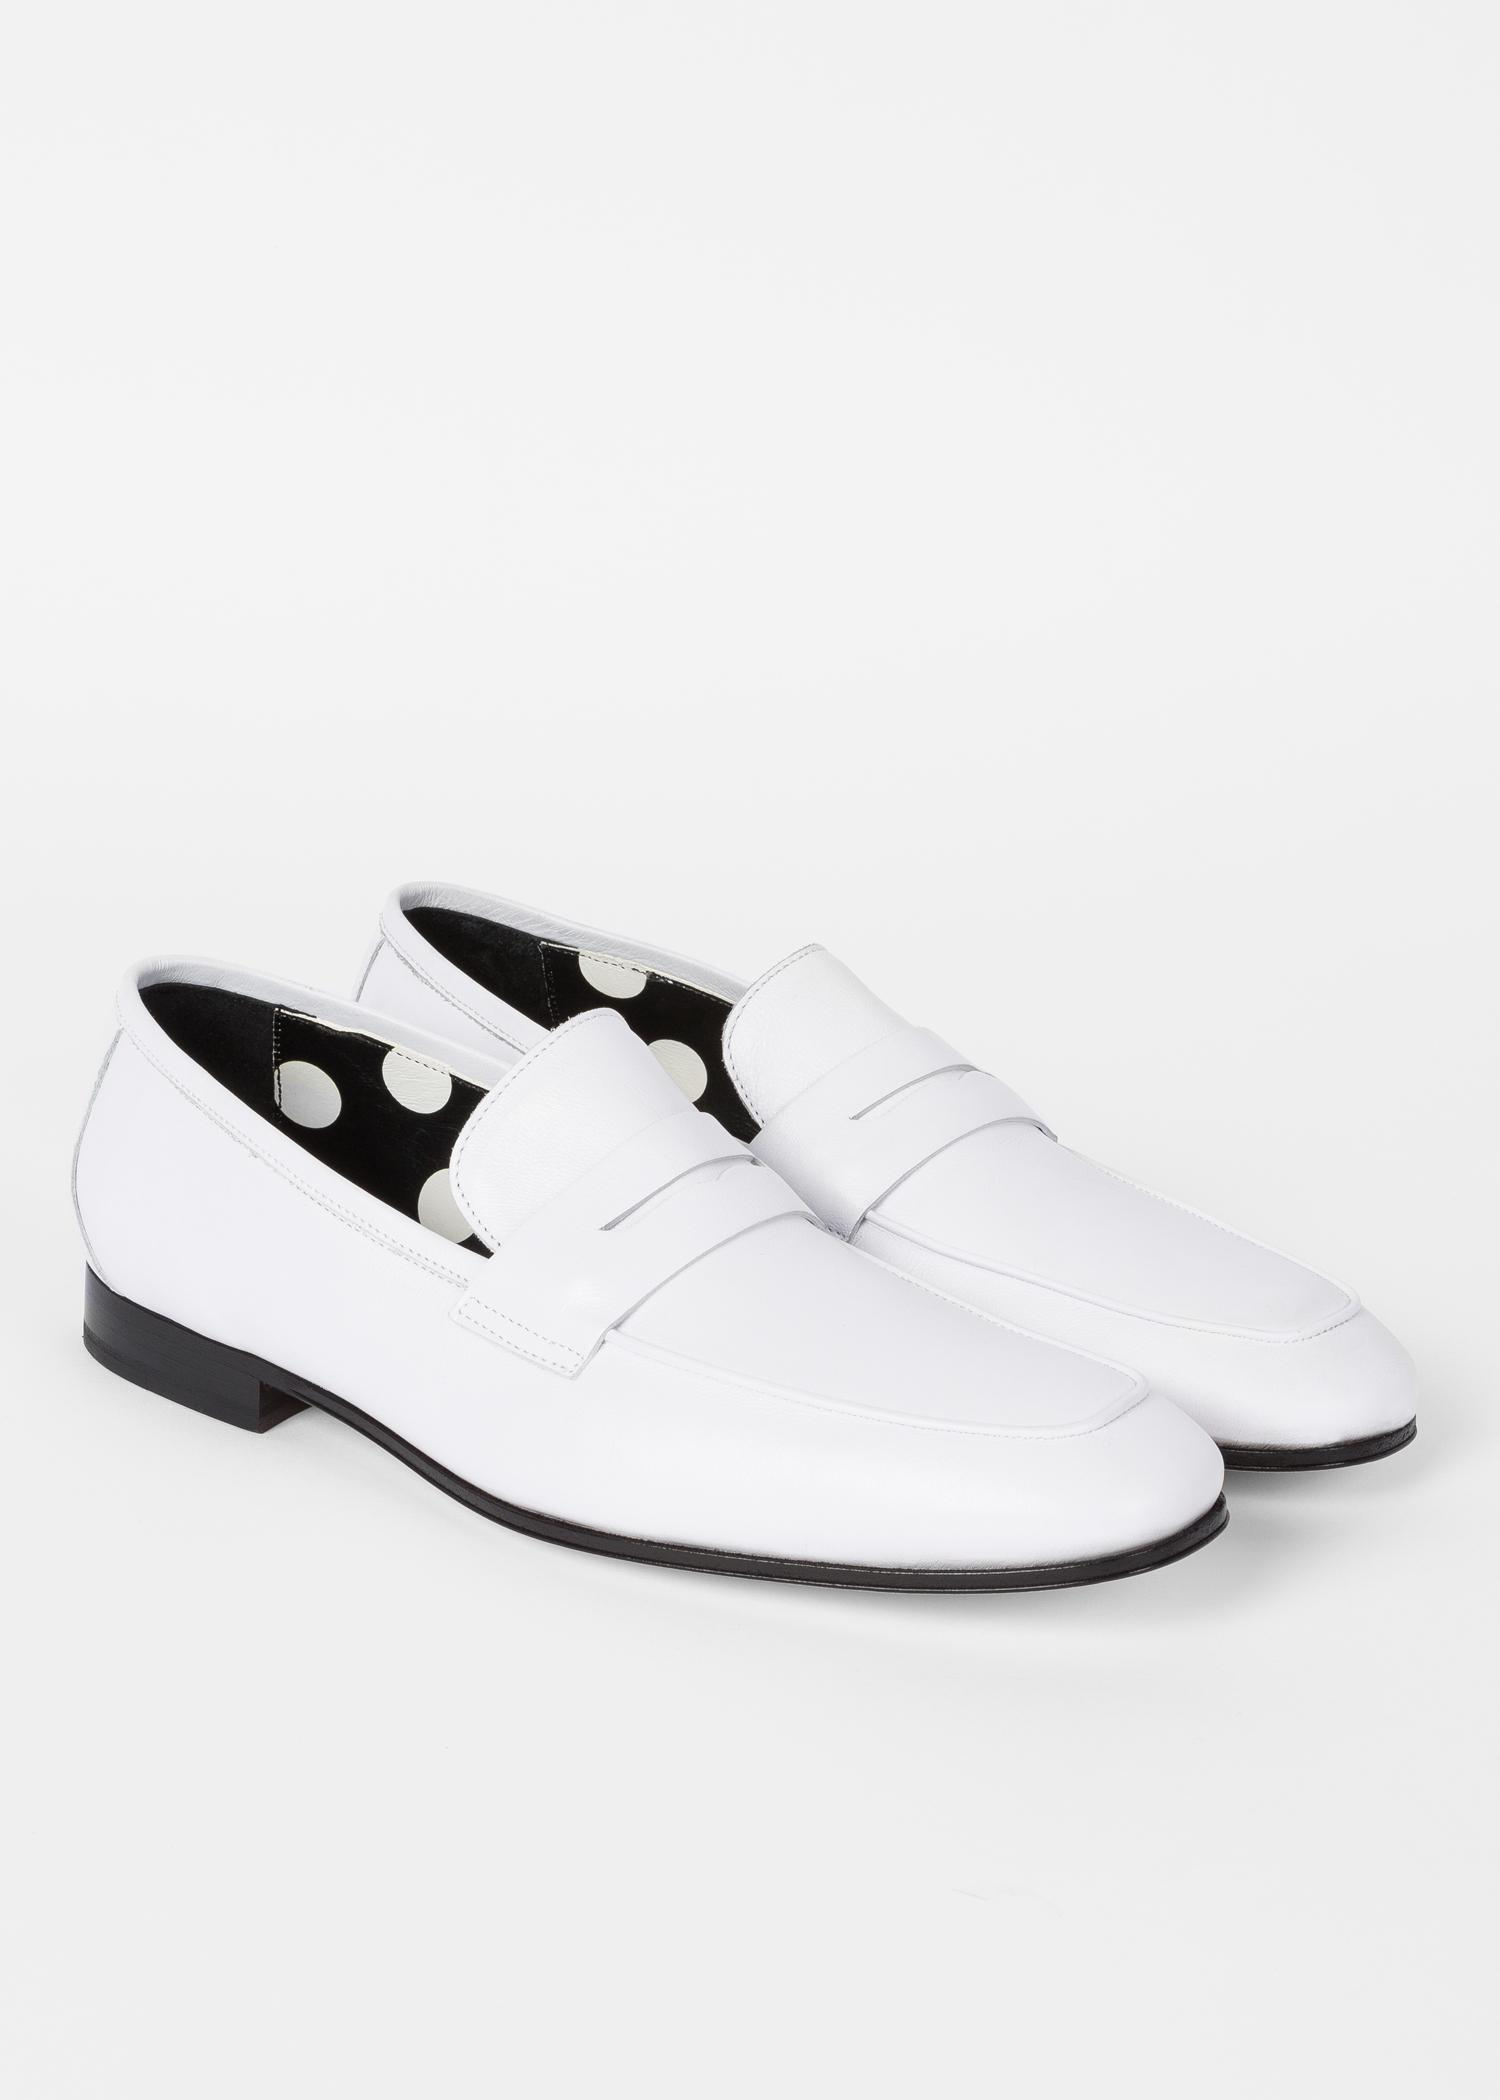 Paul Smith White Leather 'glynn' Penny Loafers for Men - Lyst